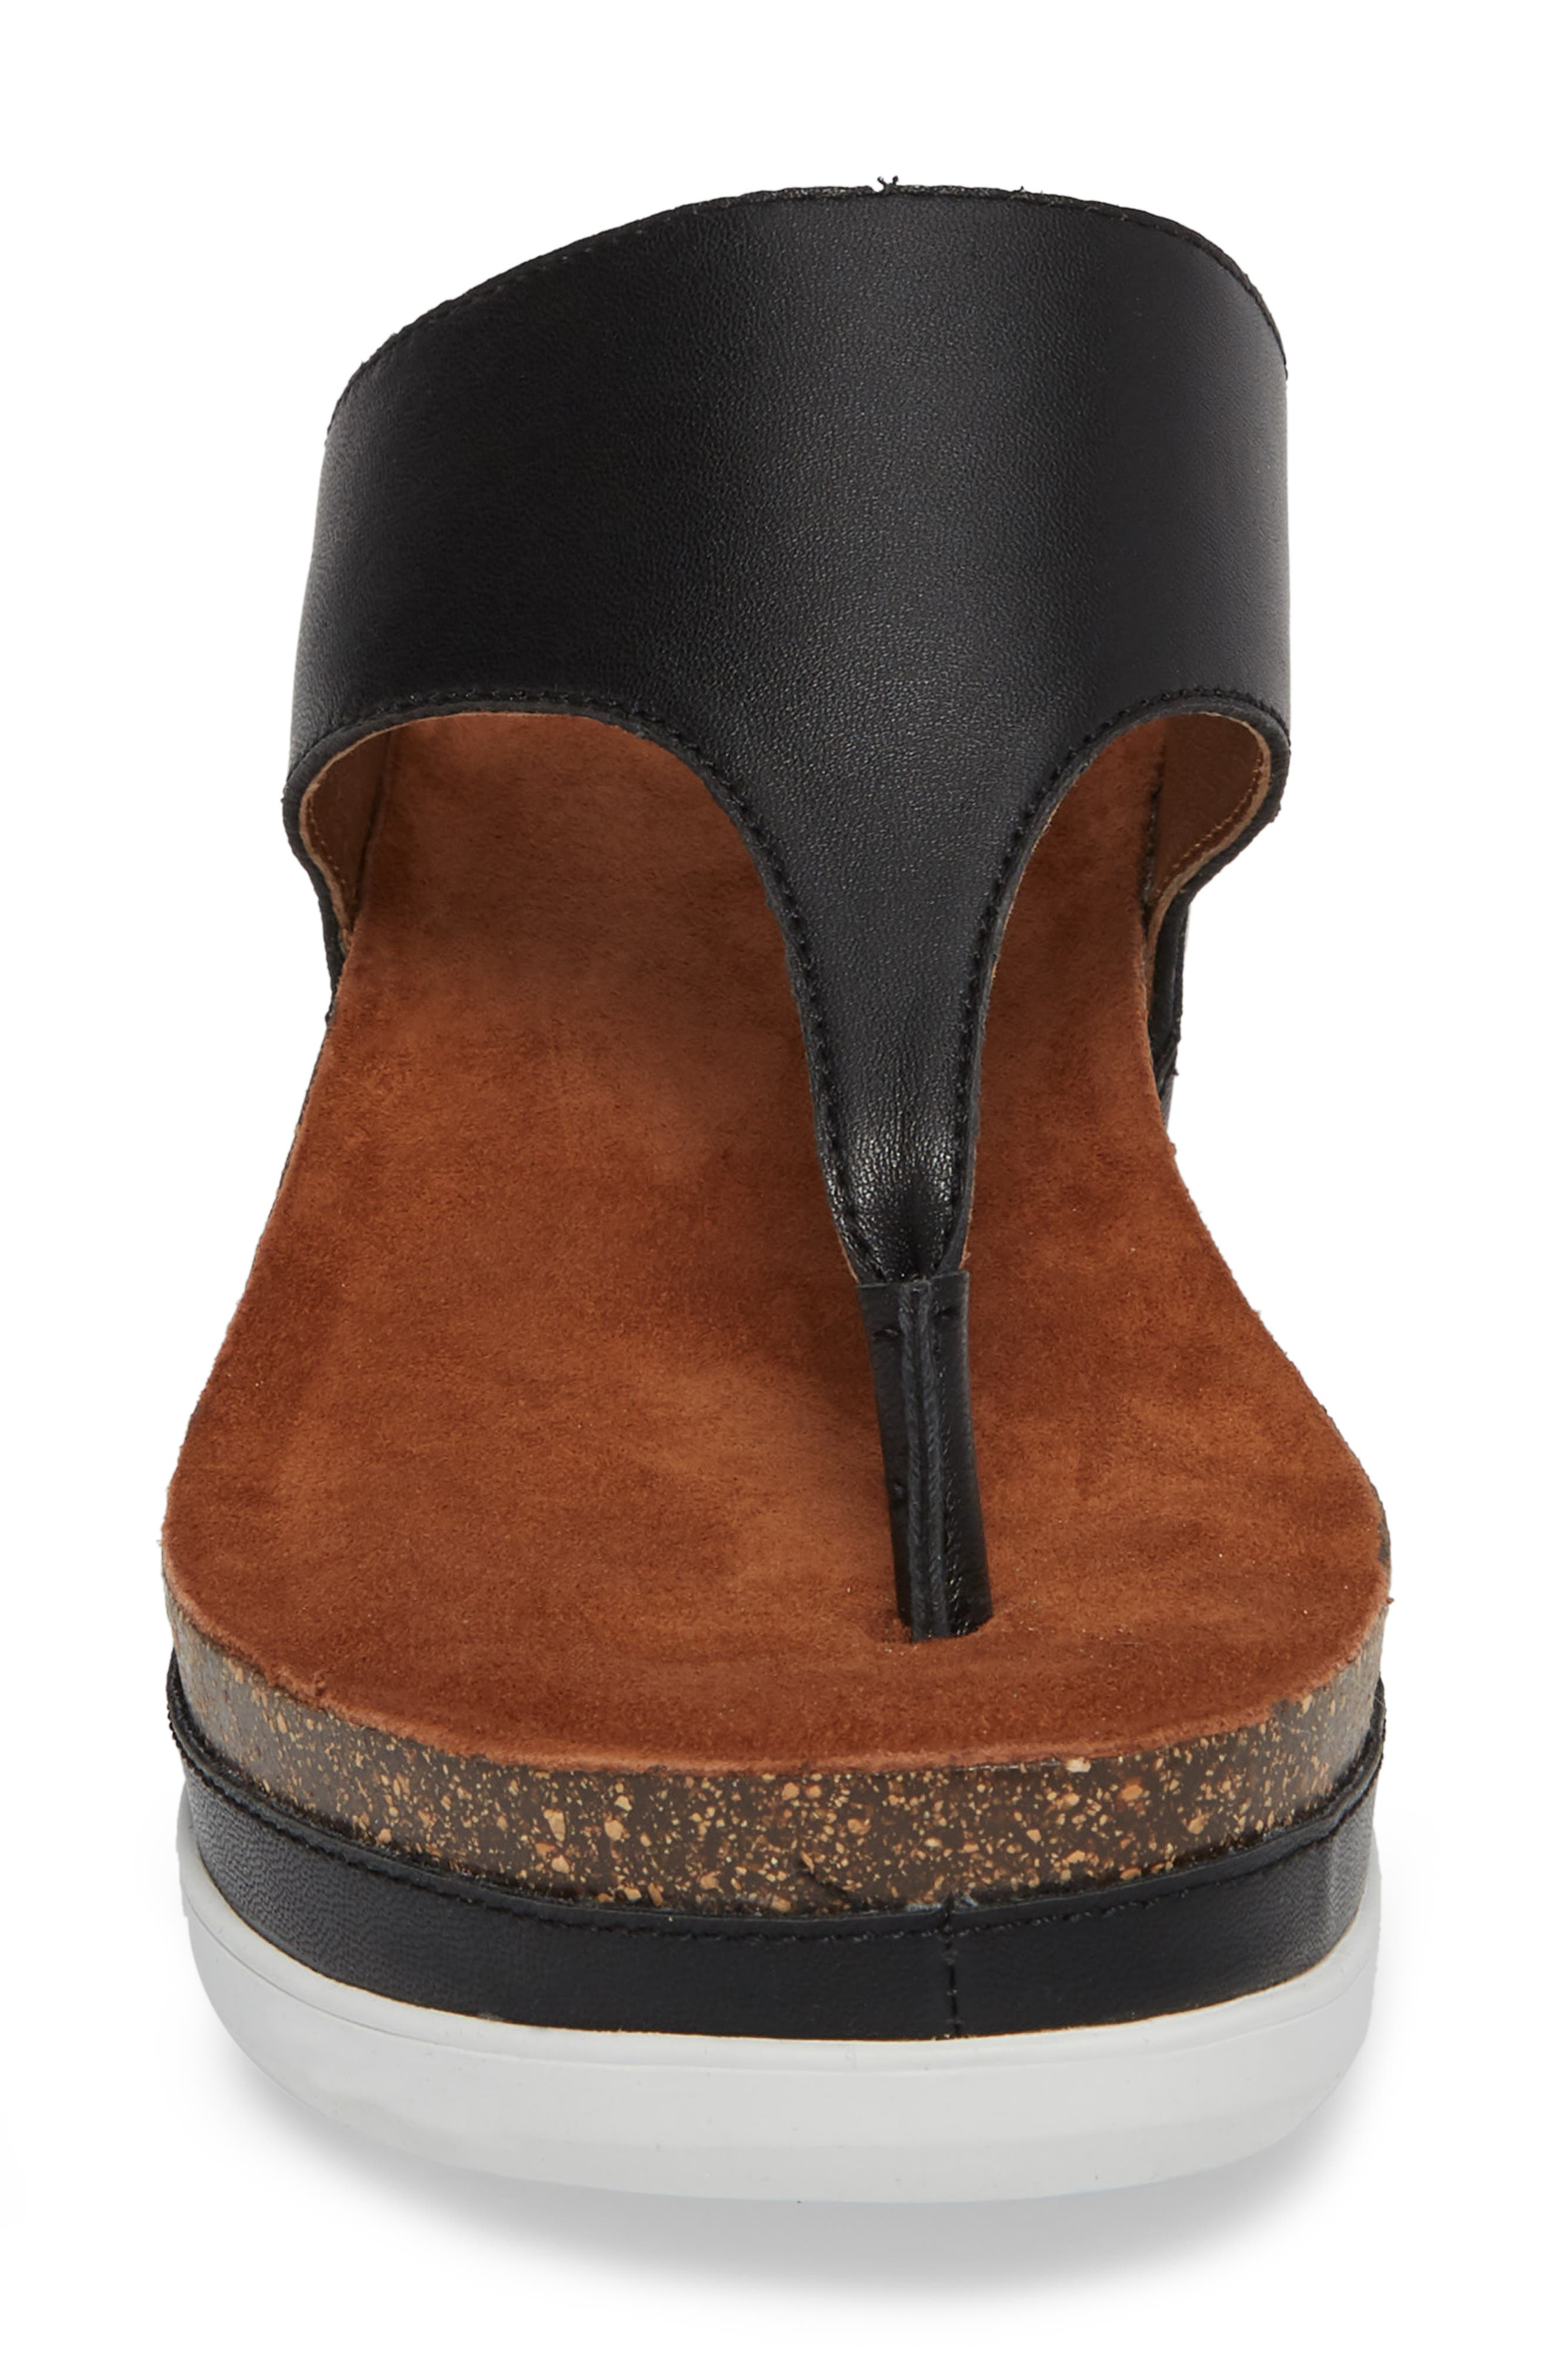 Paige Wedge Mule,                             Alternate thumbnail 4, color,                             BLACK LEATHER